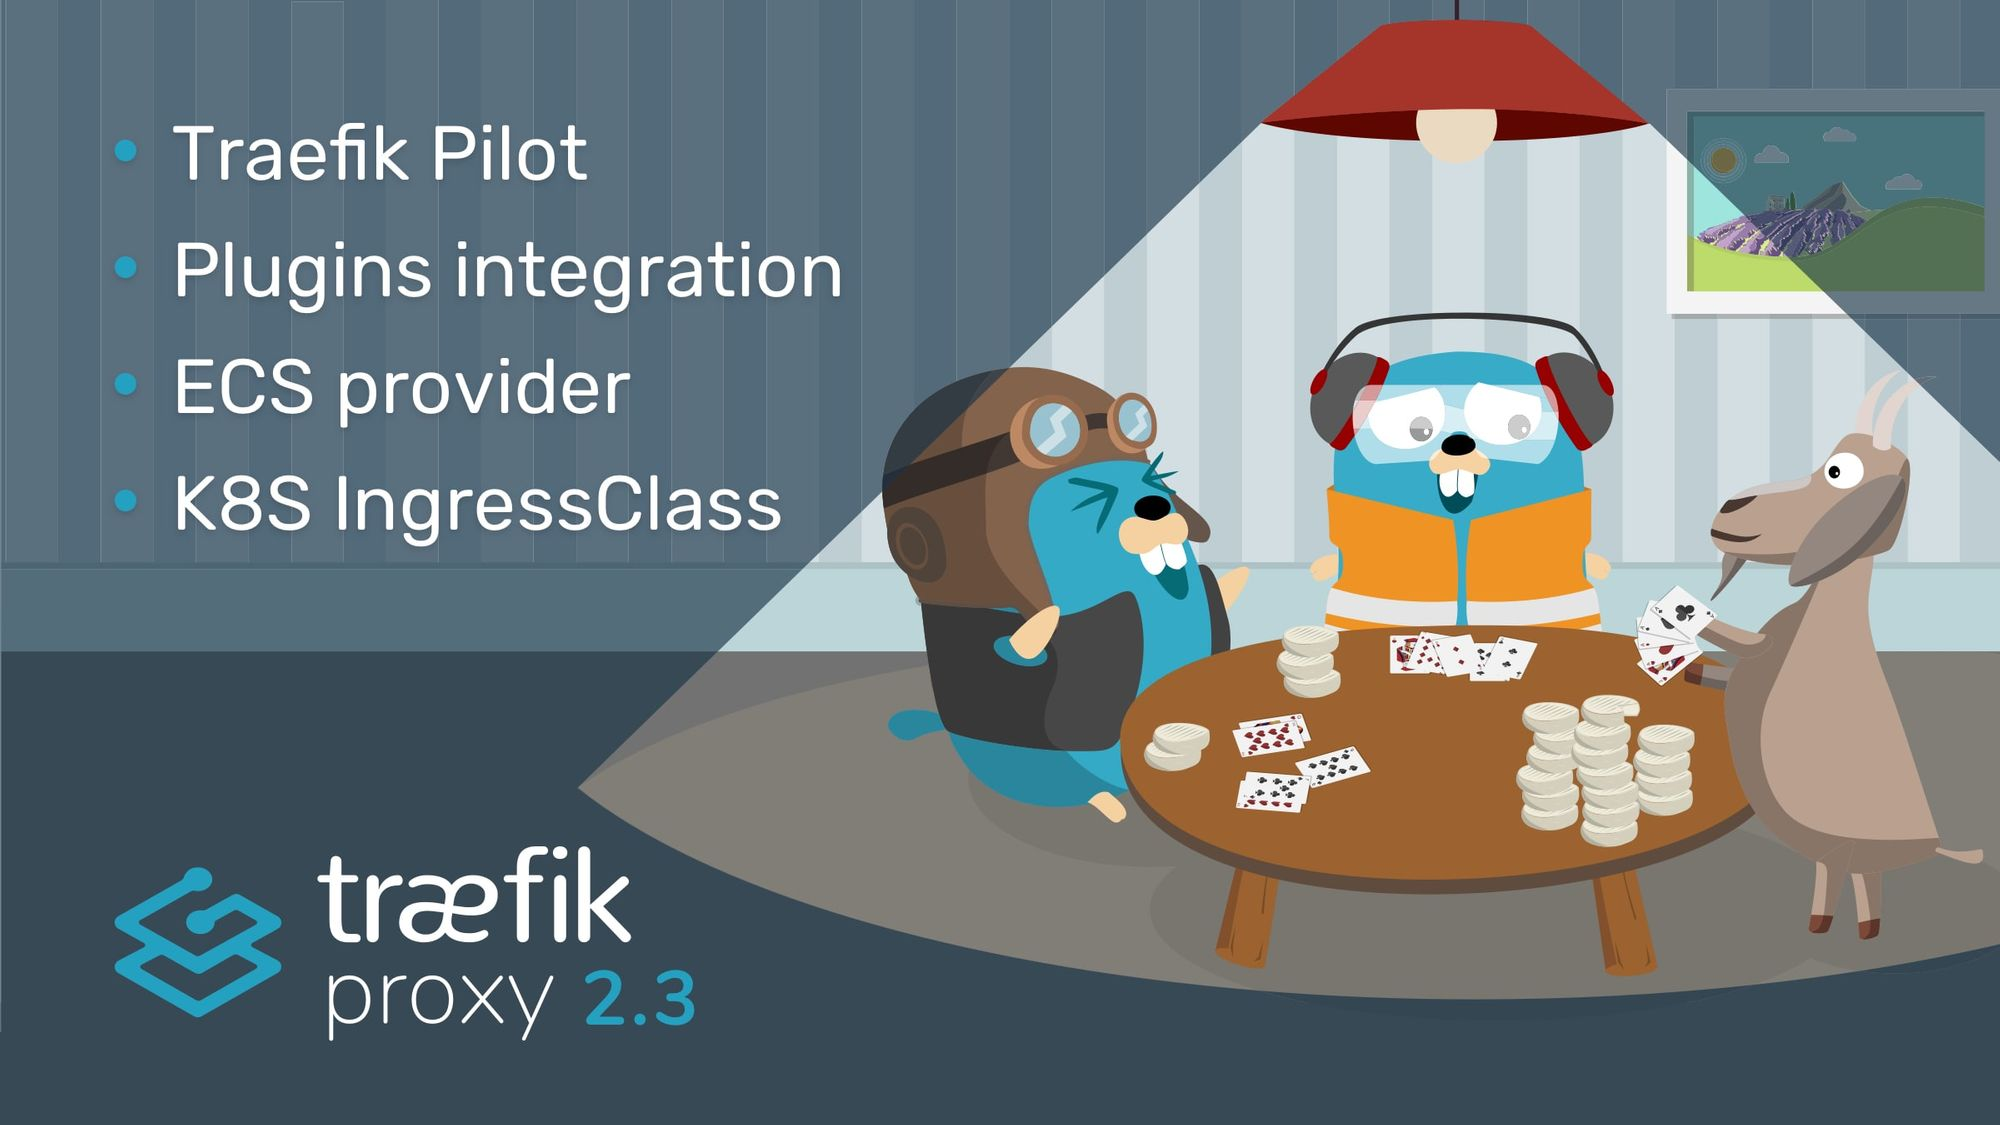 Traefik 2.3 features integration with Traefik Pilot, Middleware Plugins, ECS provider, and support for K8S IngressClass